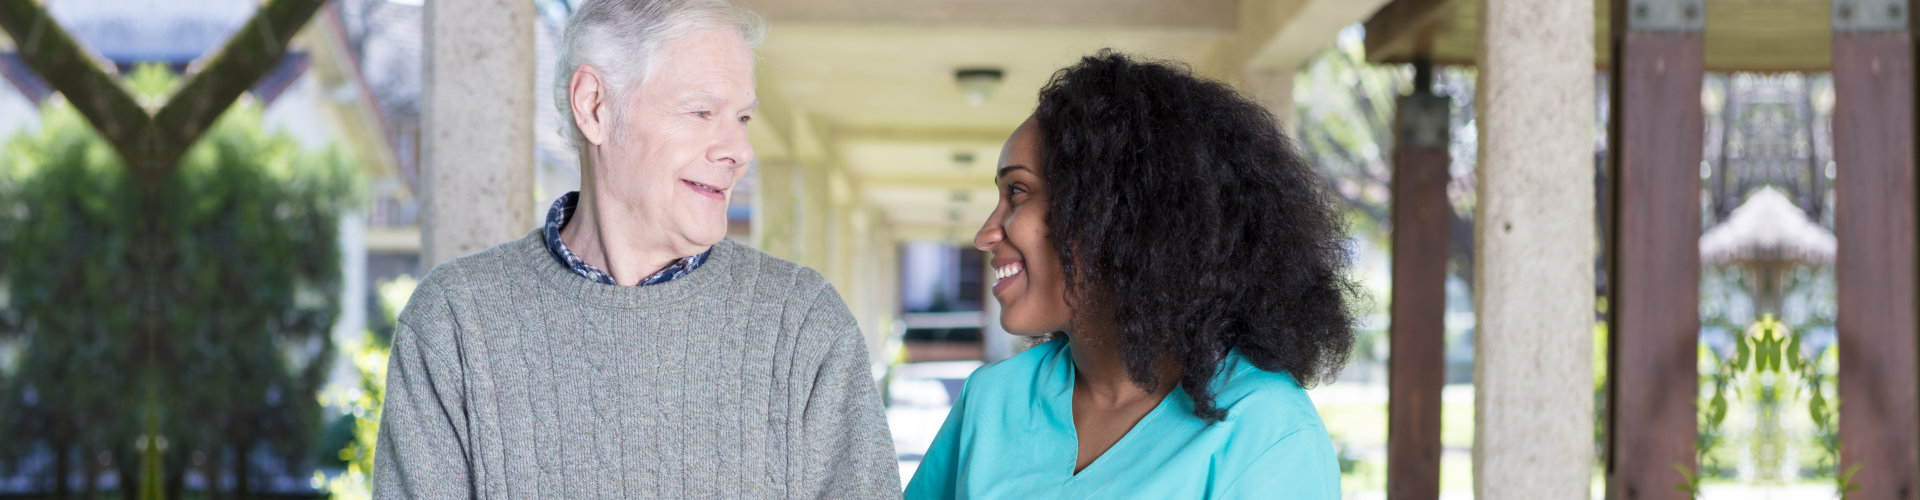 caregiver and elderly man looking at each other